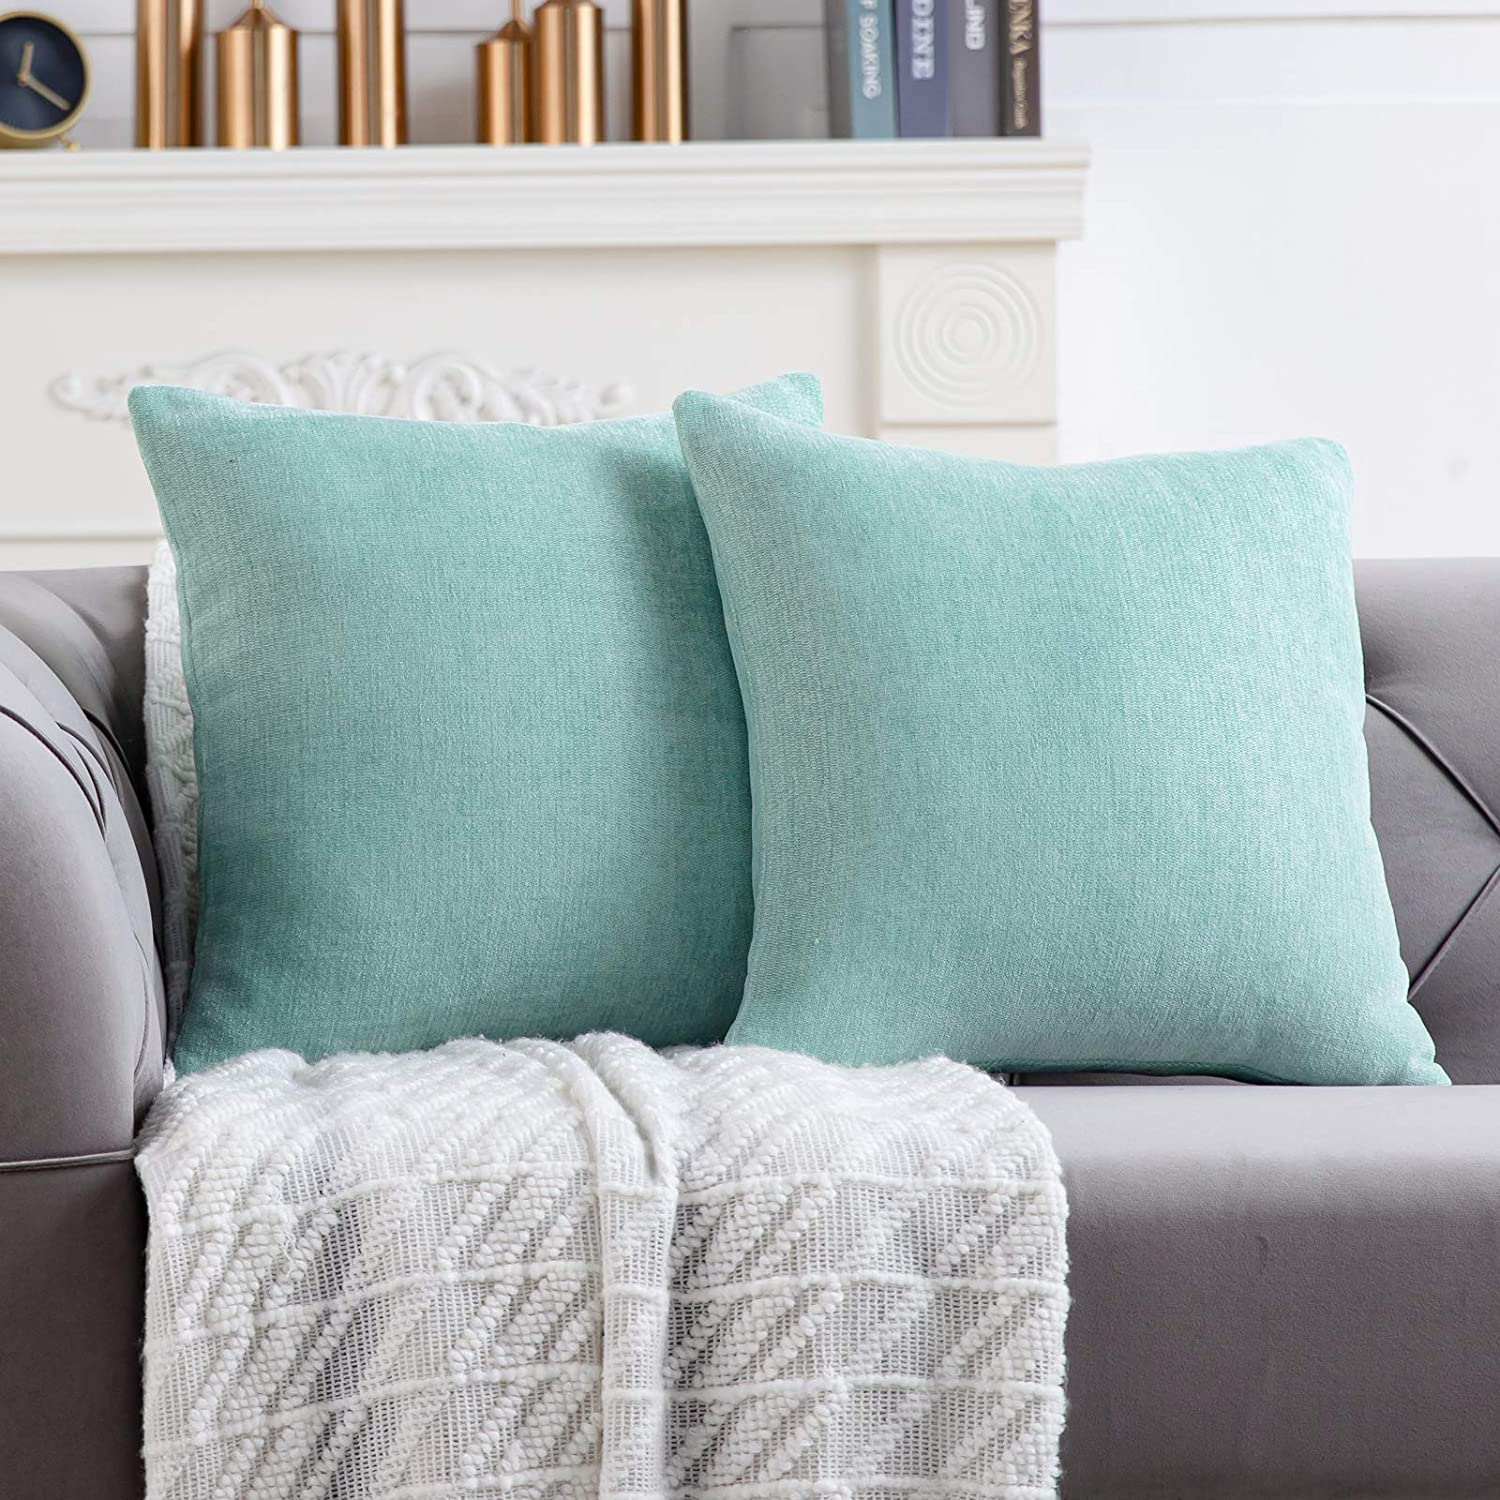 Anickal Mint Green Pillow Covers 18x18 Inch Set of 2 Solid Rustic Farmhouse Decorative Throw Pillow Covers Square Cushion Case for Home Sofa Couch Decoration